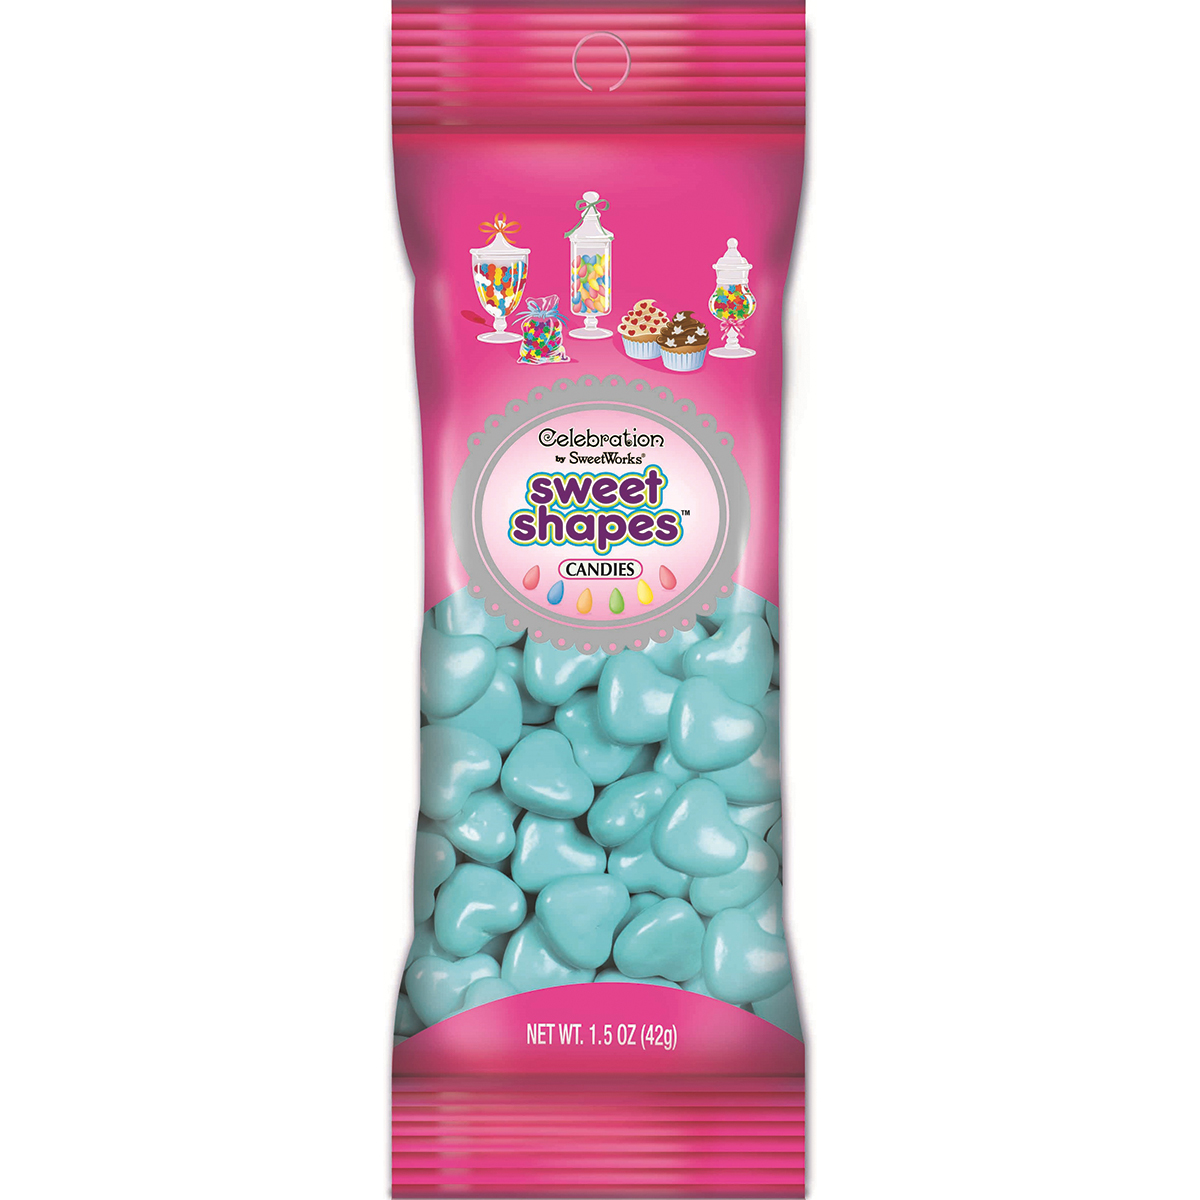 Celebrations By SweetWorks Sweet Shapes(TM) 1.5oz-Light Blue Hearts